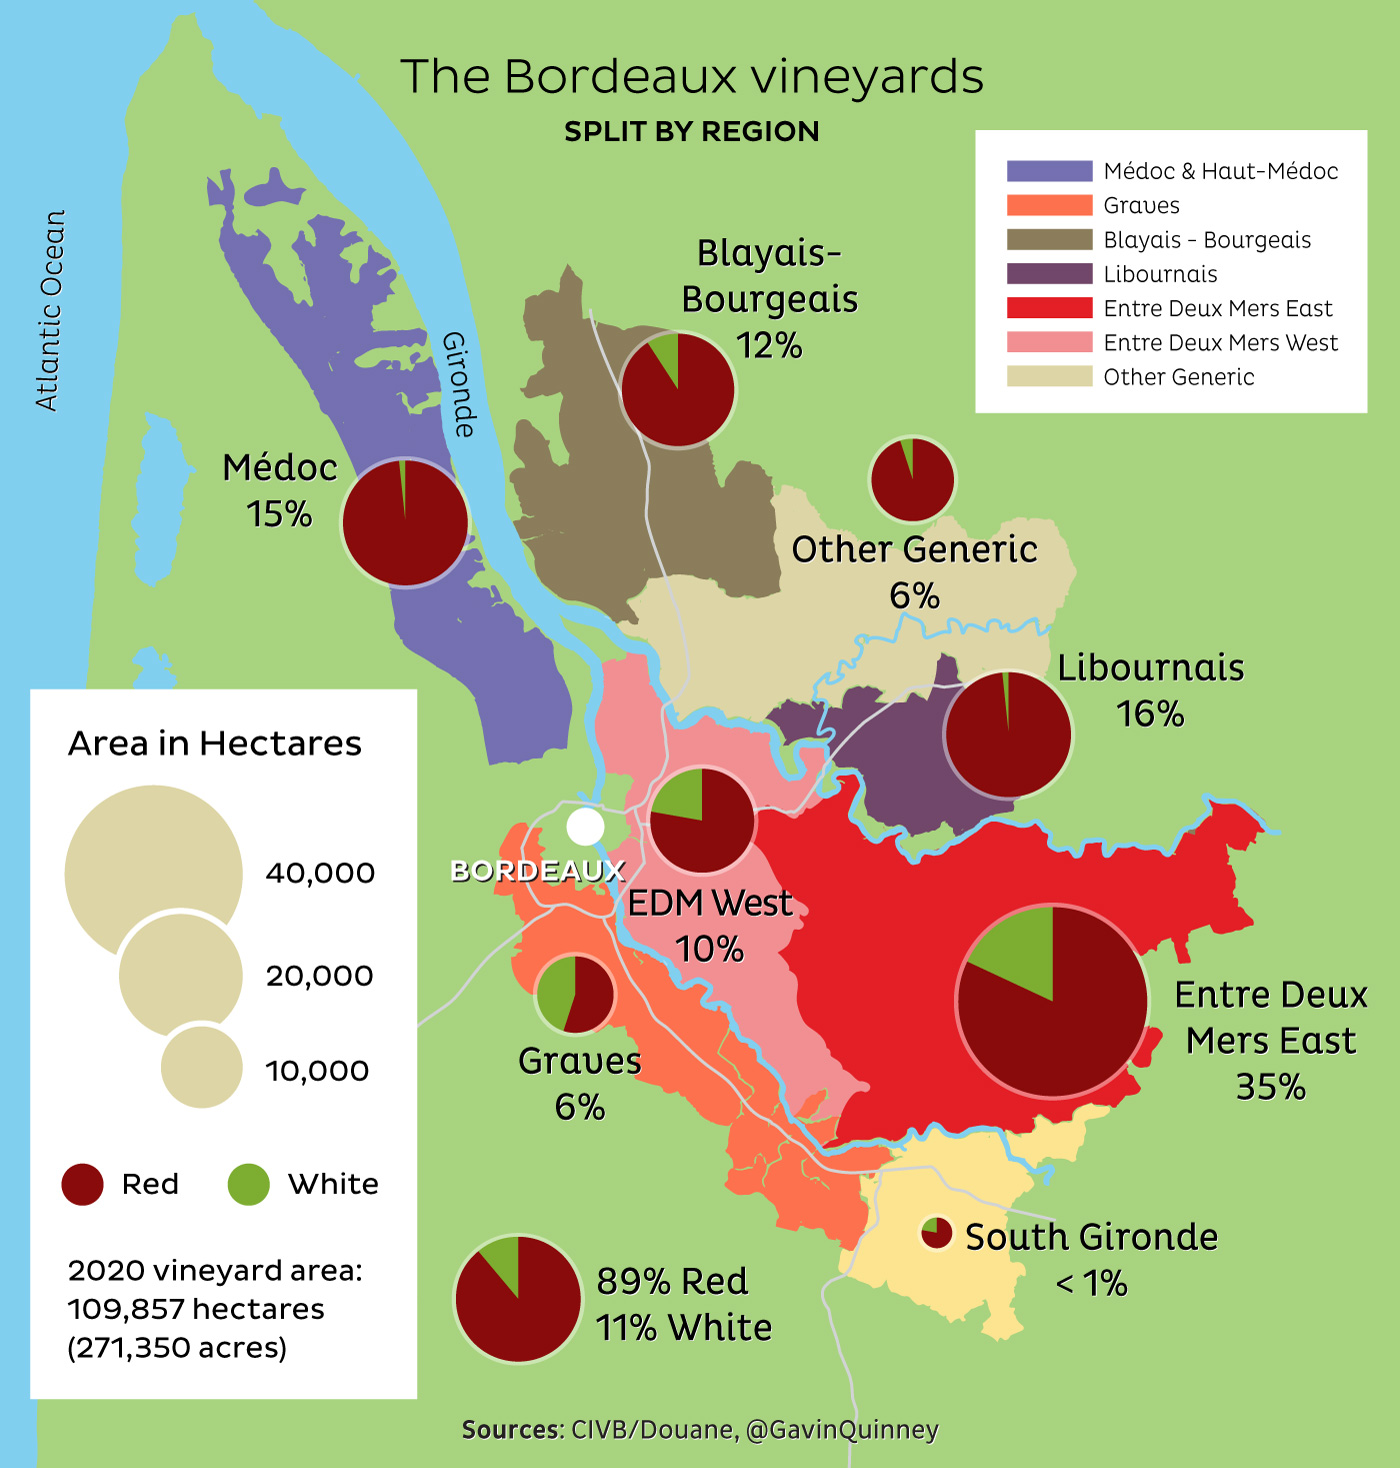 The Bordeaux vineyards Split by Region